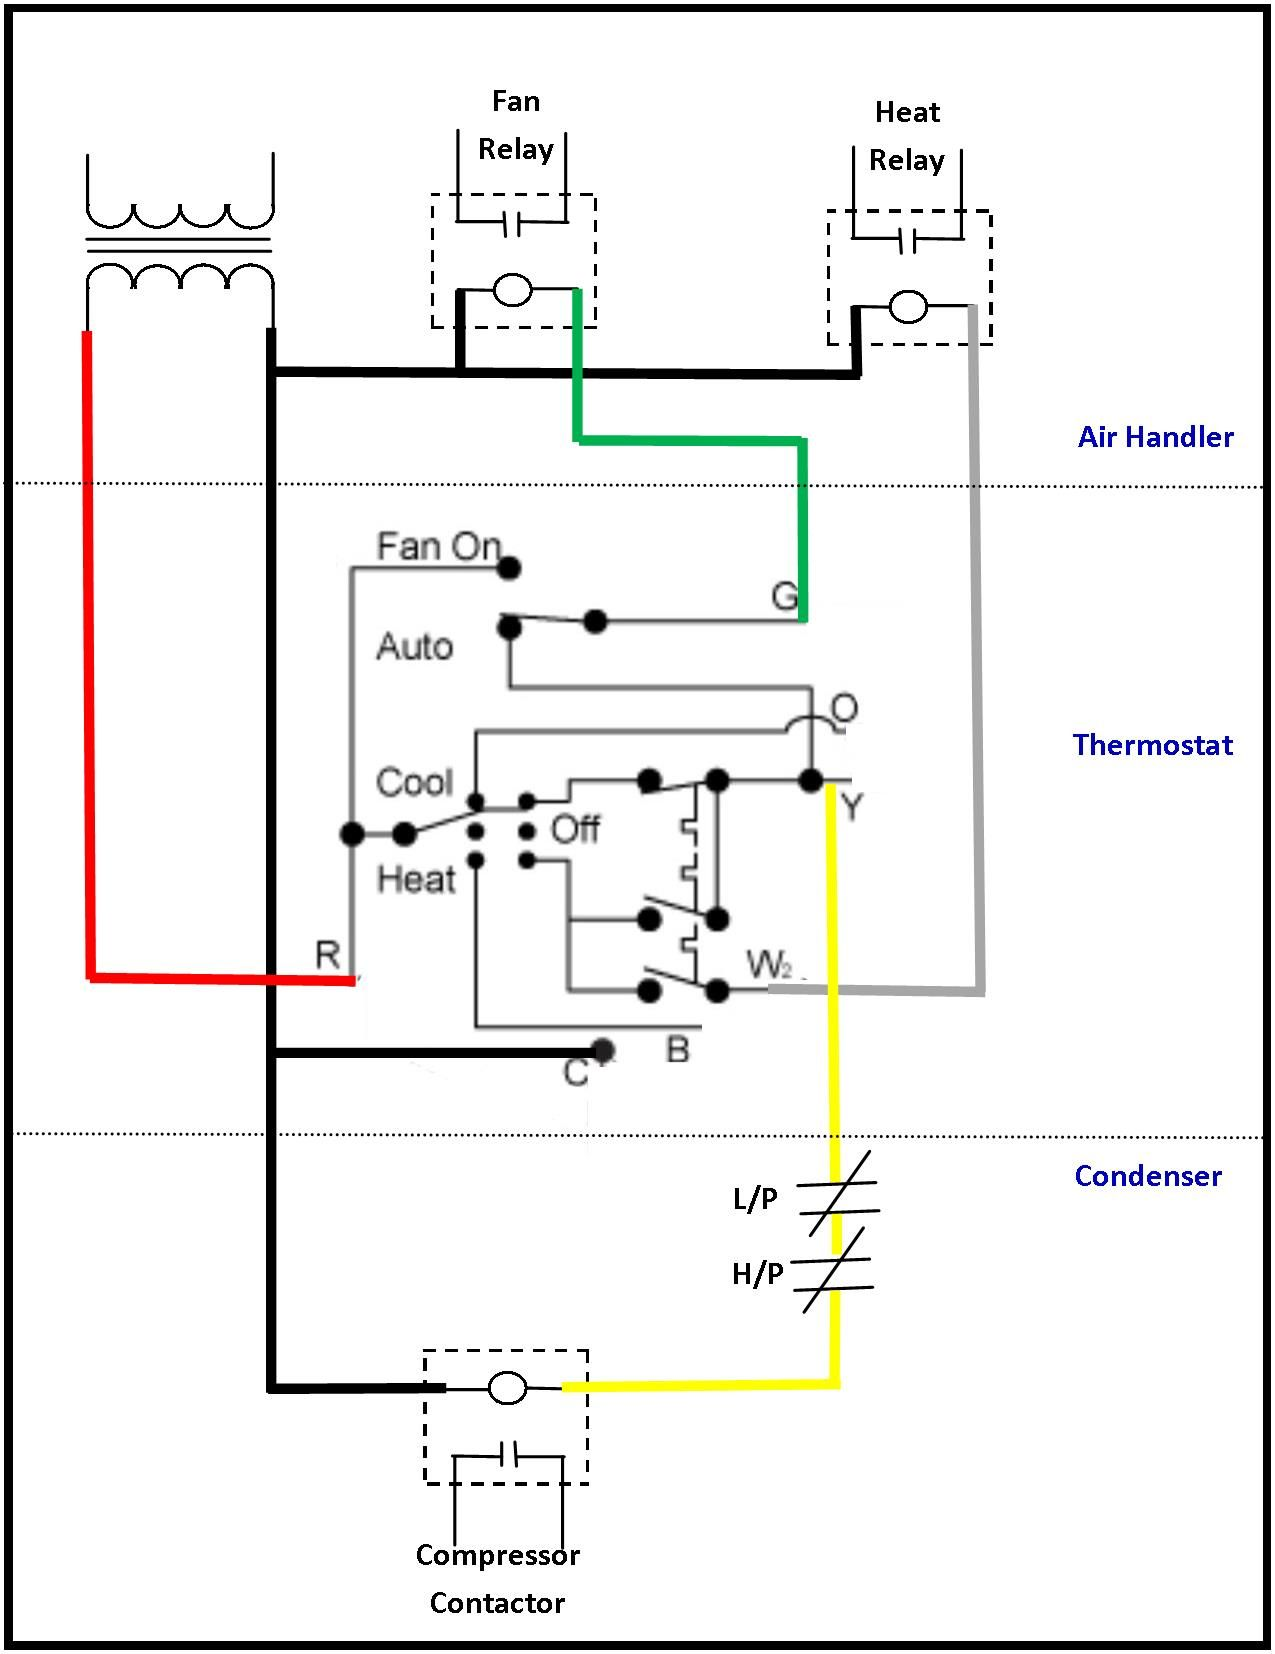 24 Volt Transformer Wiring Diagram Electrical Circuit Diagram Thermostat Wiring Electrical Wiring Diagram